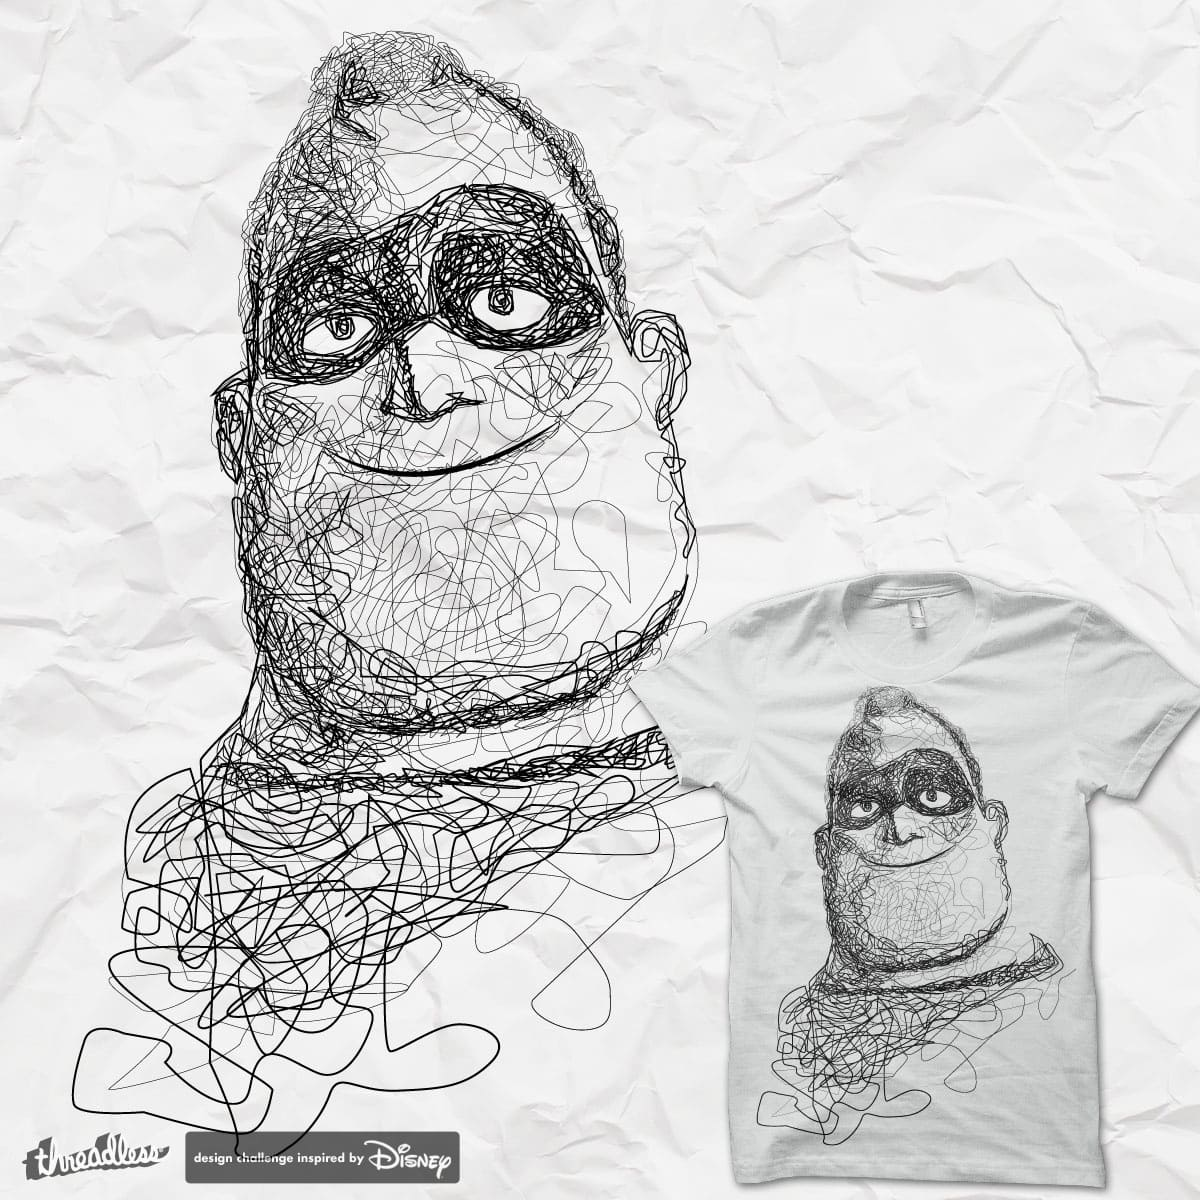 Mr. Incredible (INKredible) by graditio on Threadless